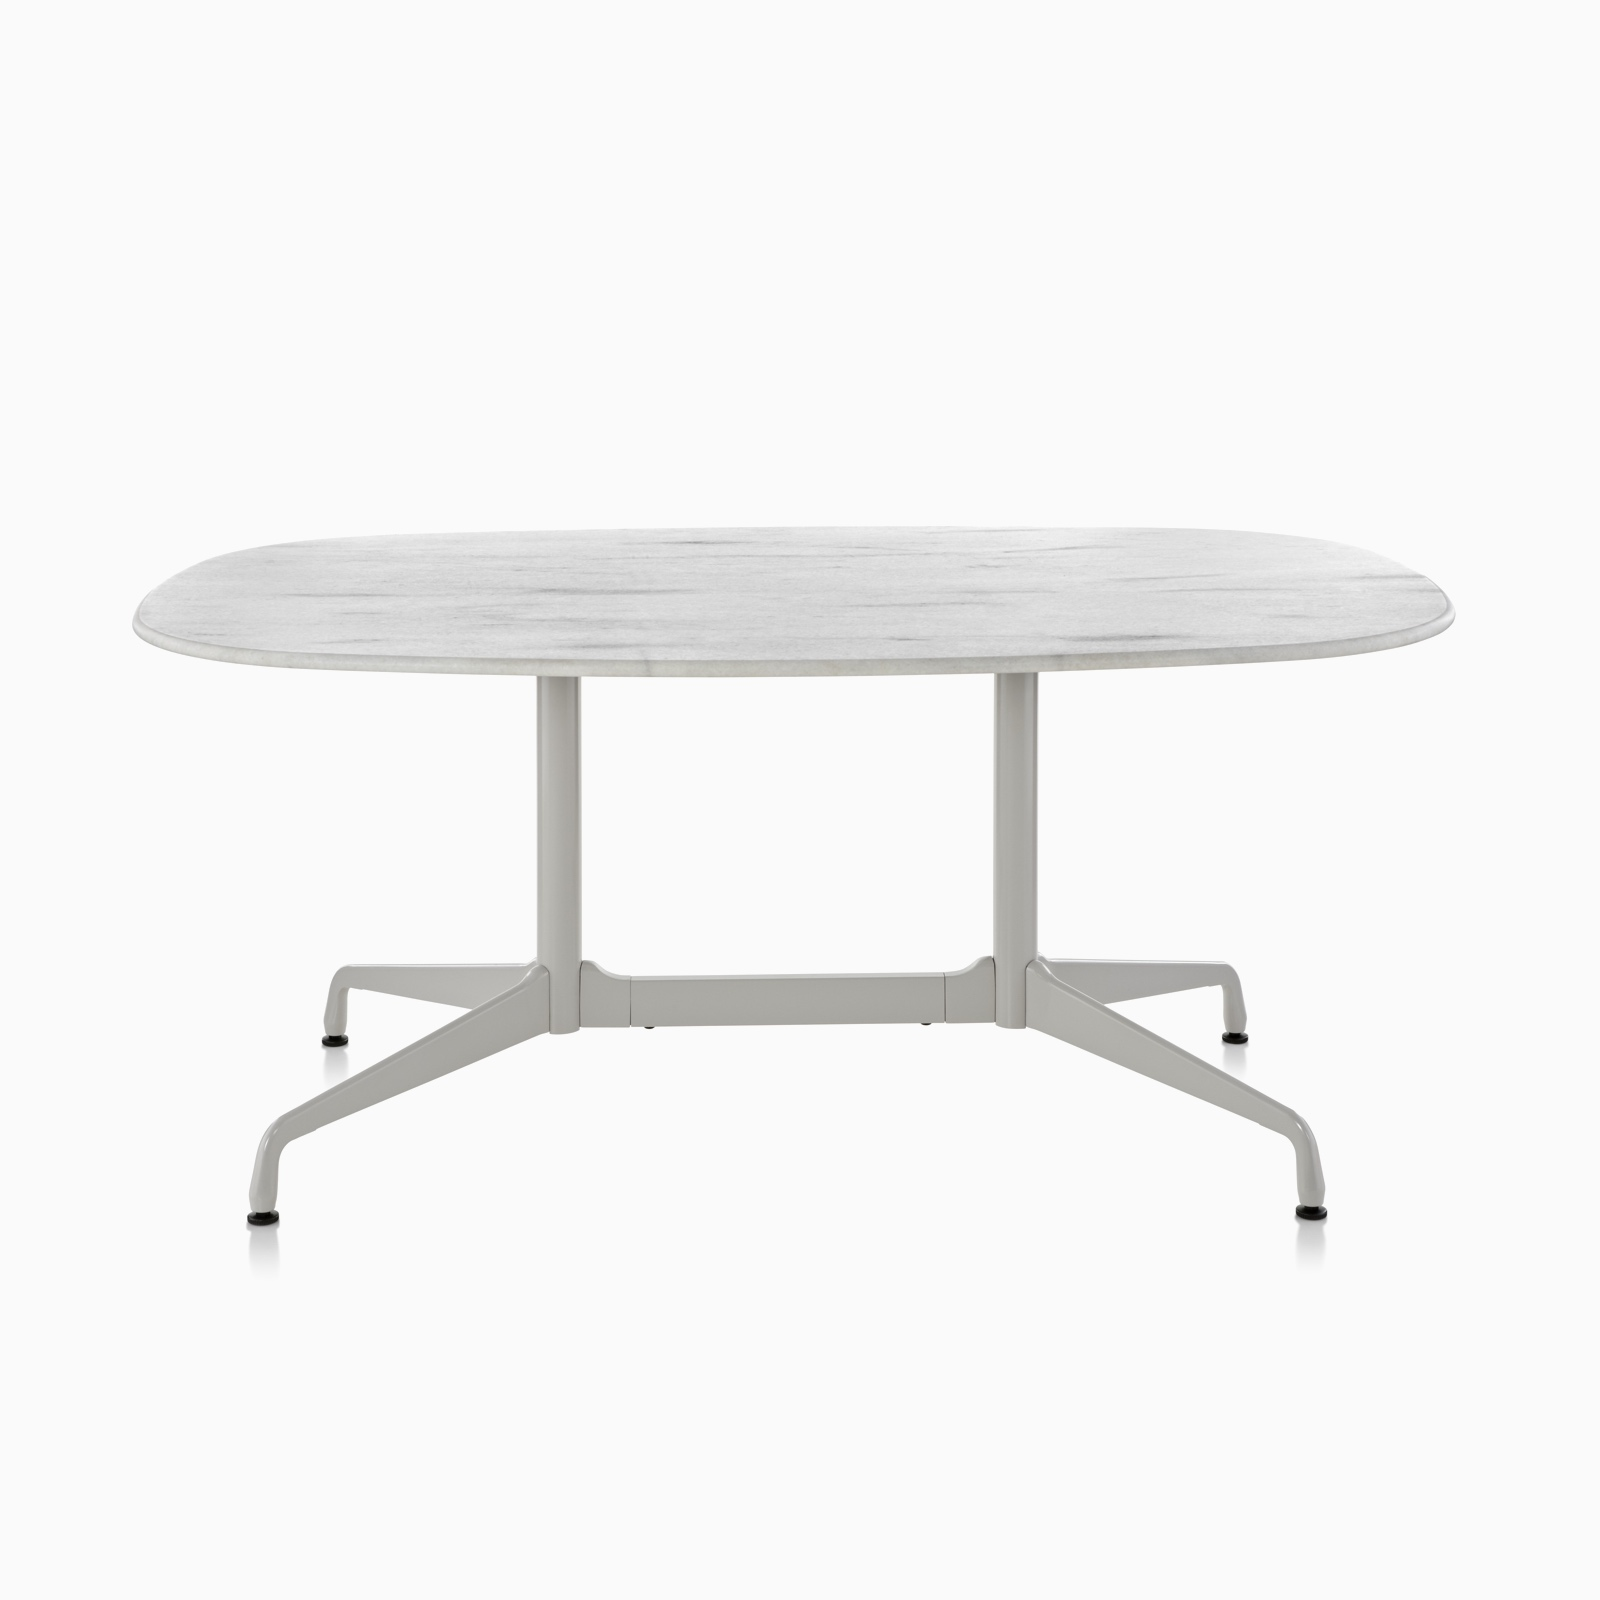 An Eames standing-height table featuring a stone top.